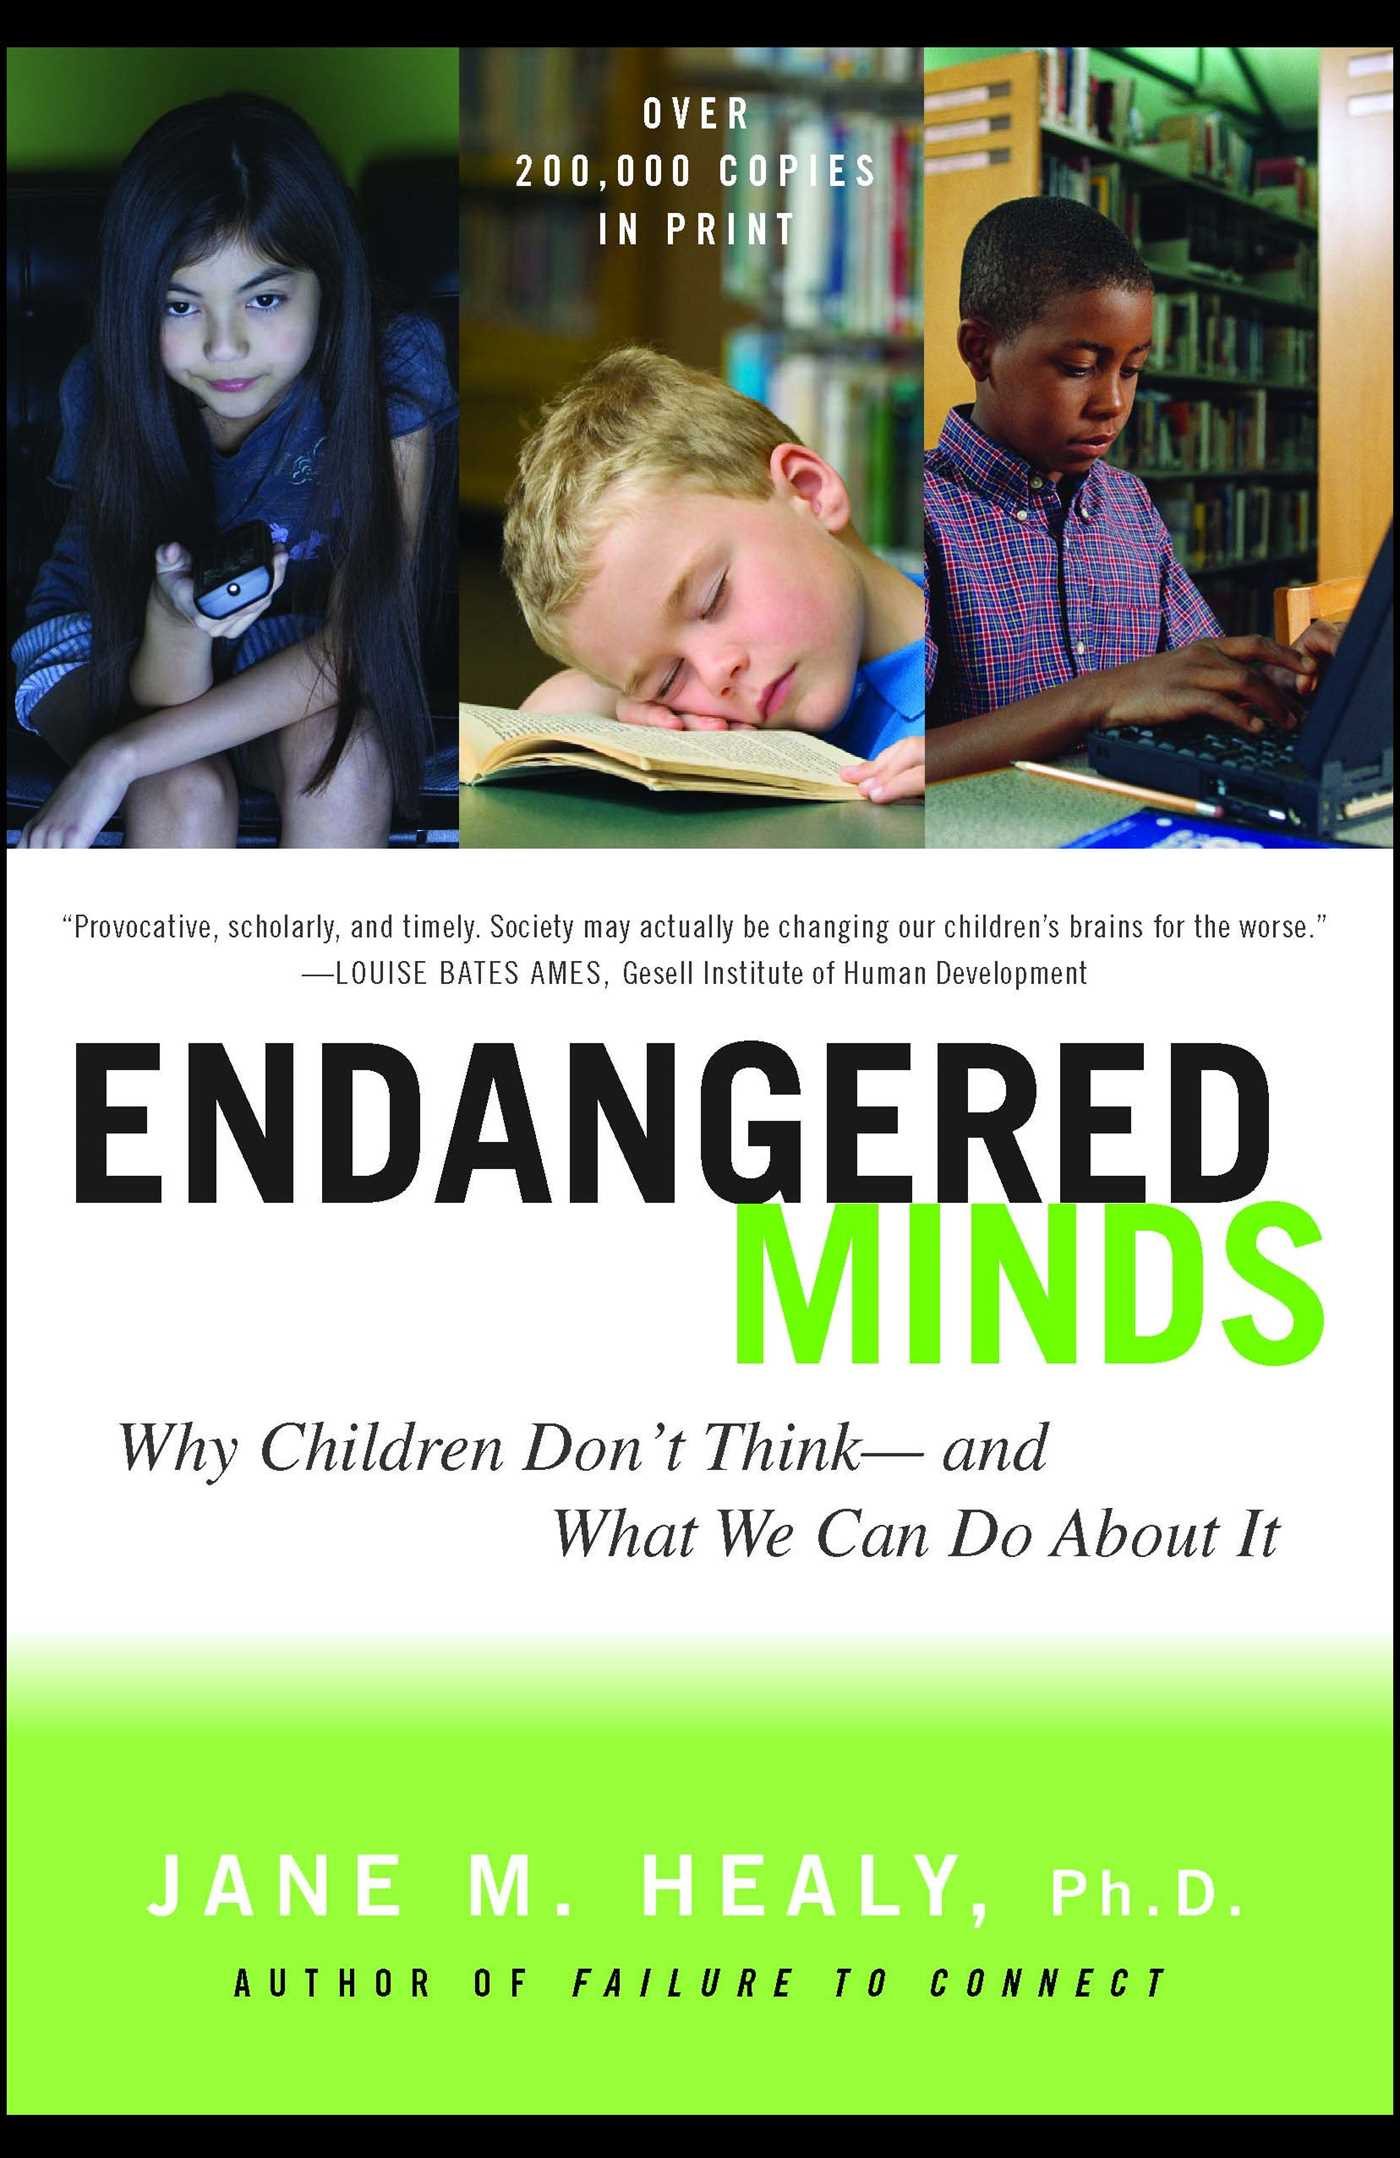 Endangered minds 9781439126707 hr